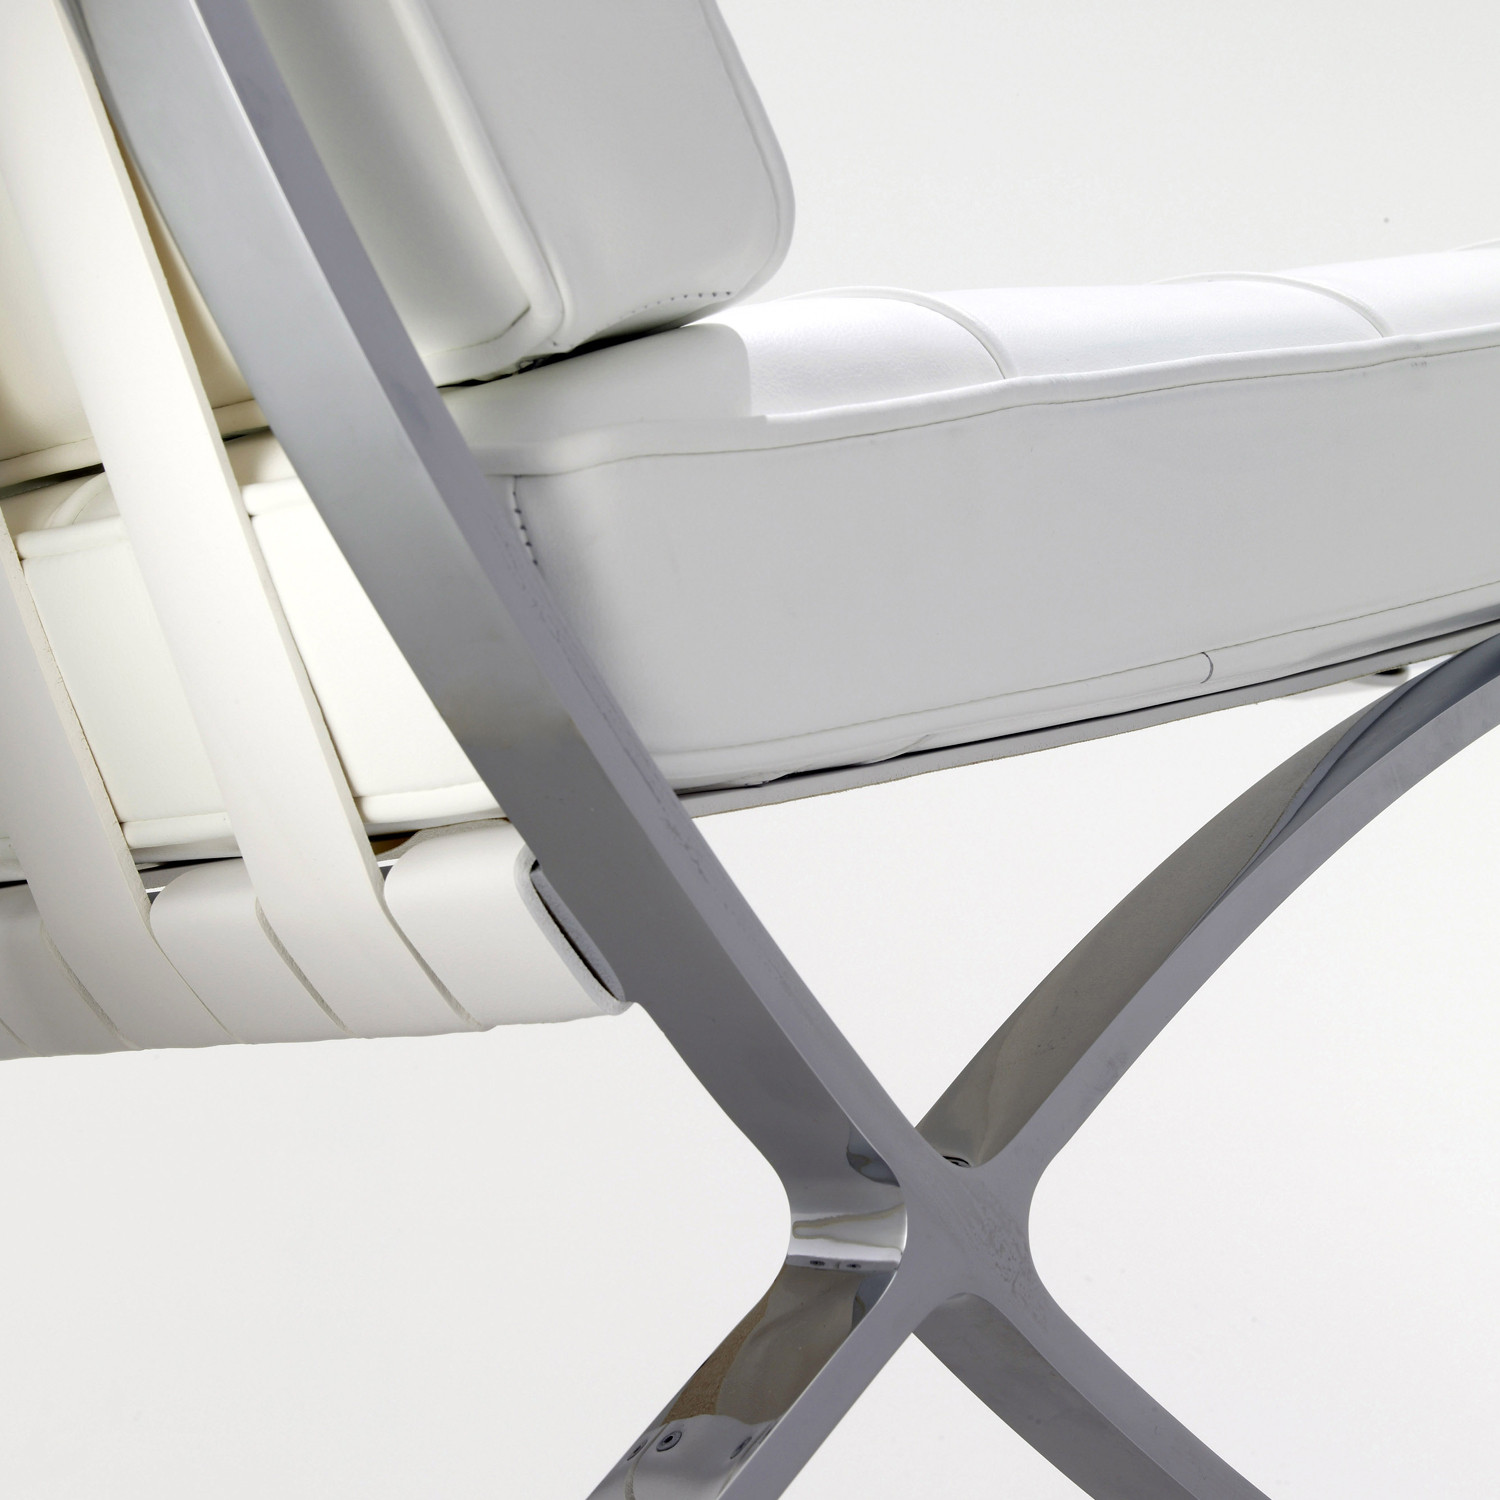 Barcelona Chair in Detail